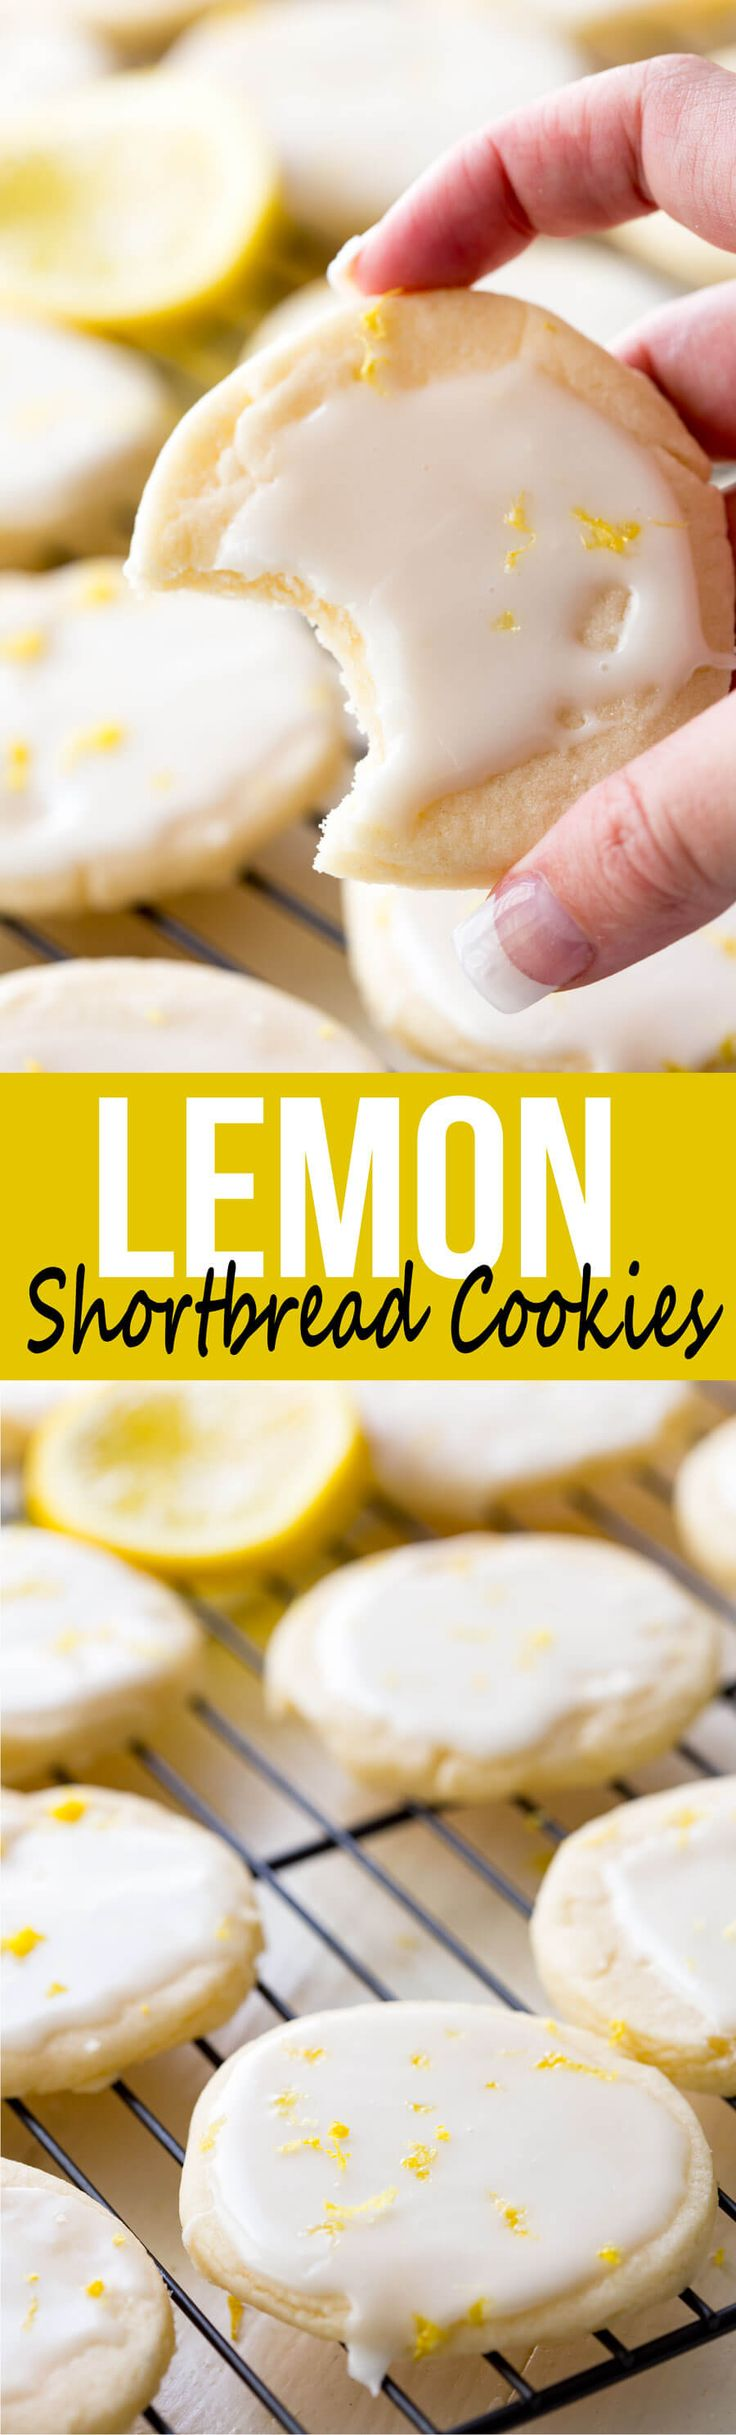 Lemon Shortbread Cookies: Light, buttery cookies offer a subtle lemon flavor topped with a bright and vibrant lemon glaze, giving you a mouthful of goodness.  via @Rachael Yerkes